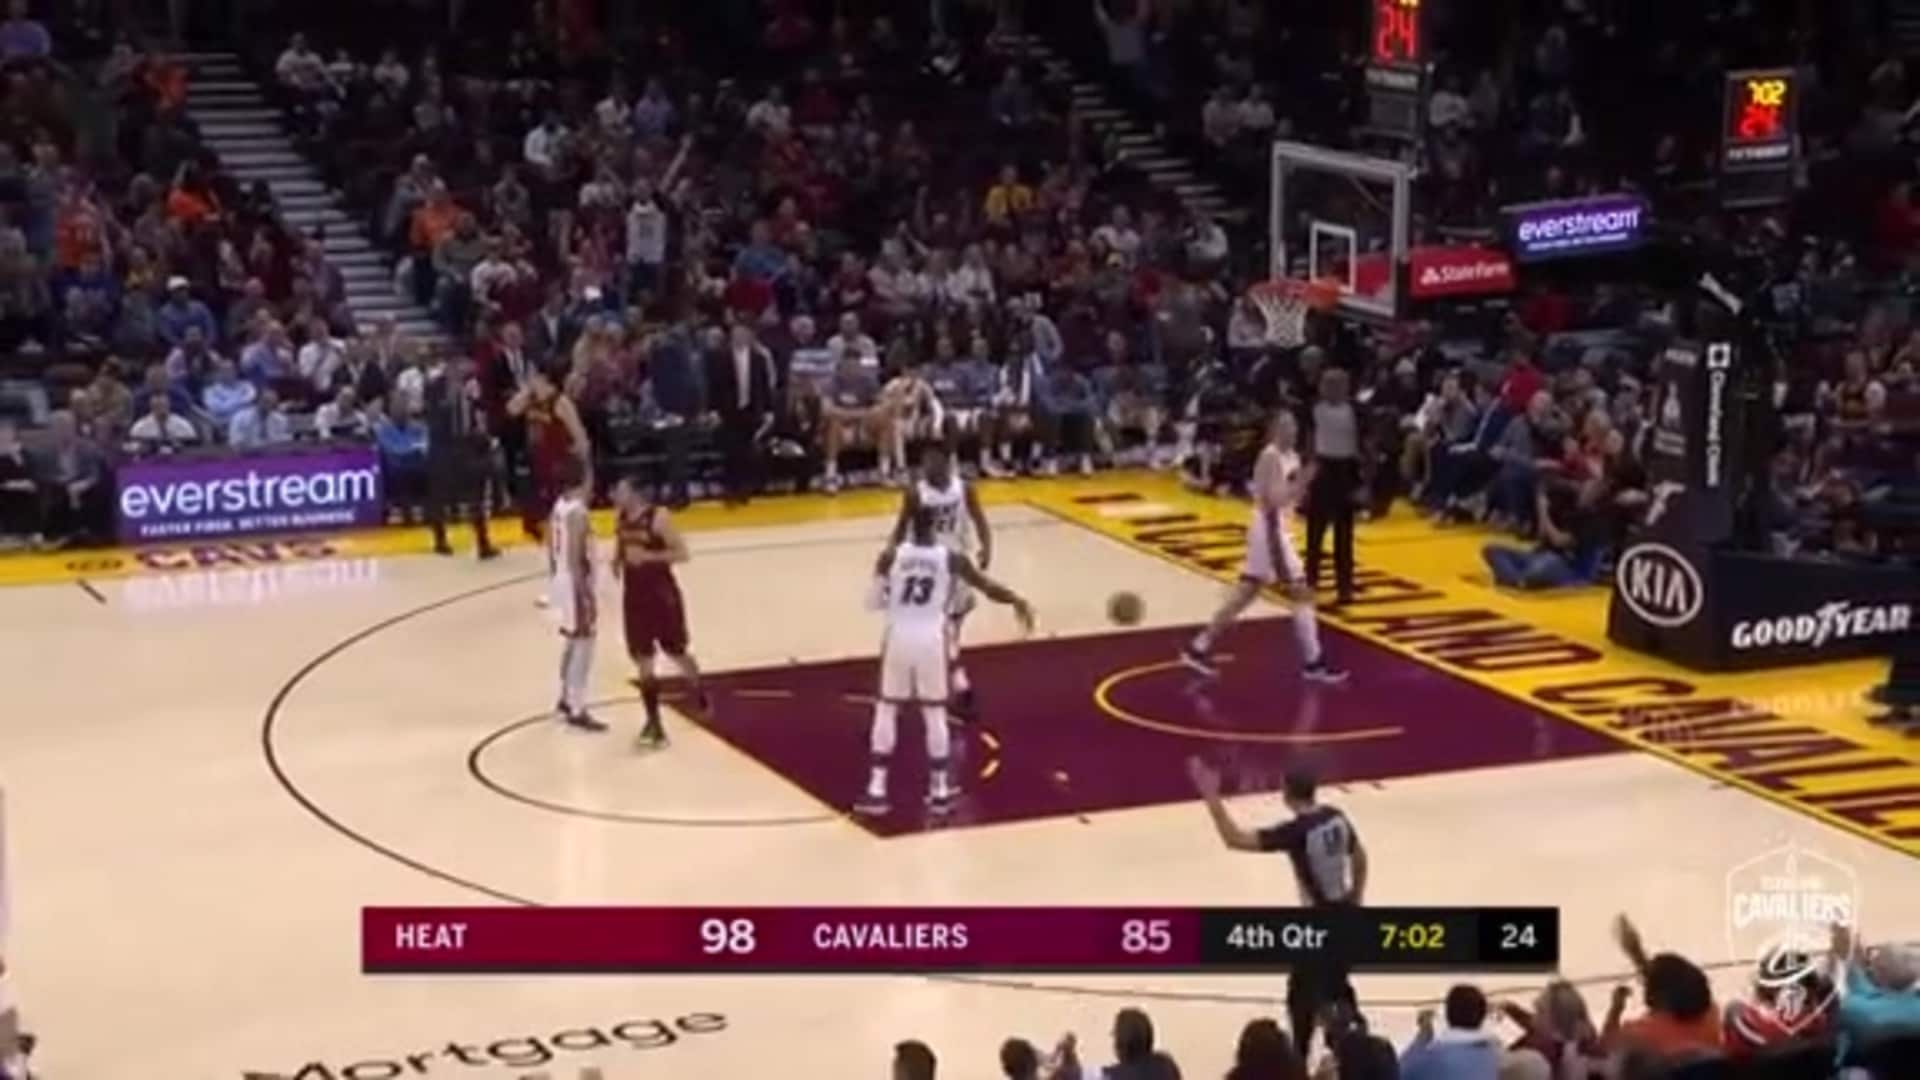 Kevin Love Knocks Down Back-To-Back Threes to Cut into Miami Lead